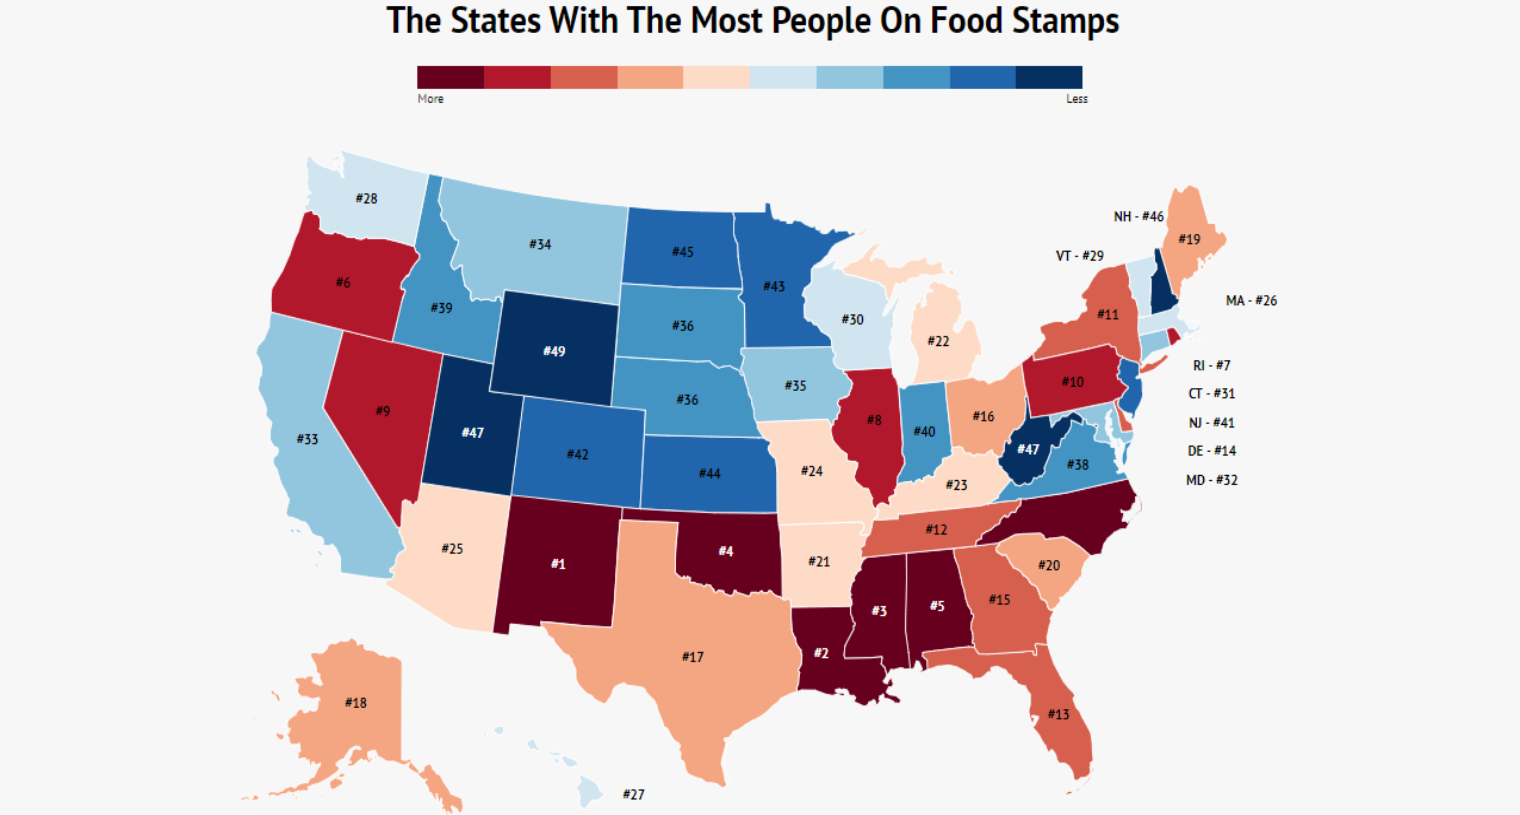 states-with-the-most-people-on-food-stamps